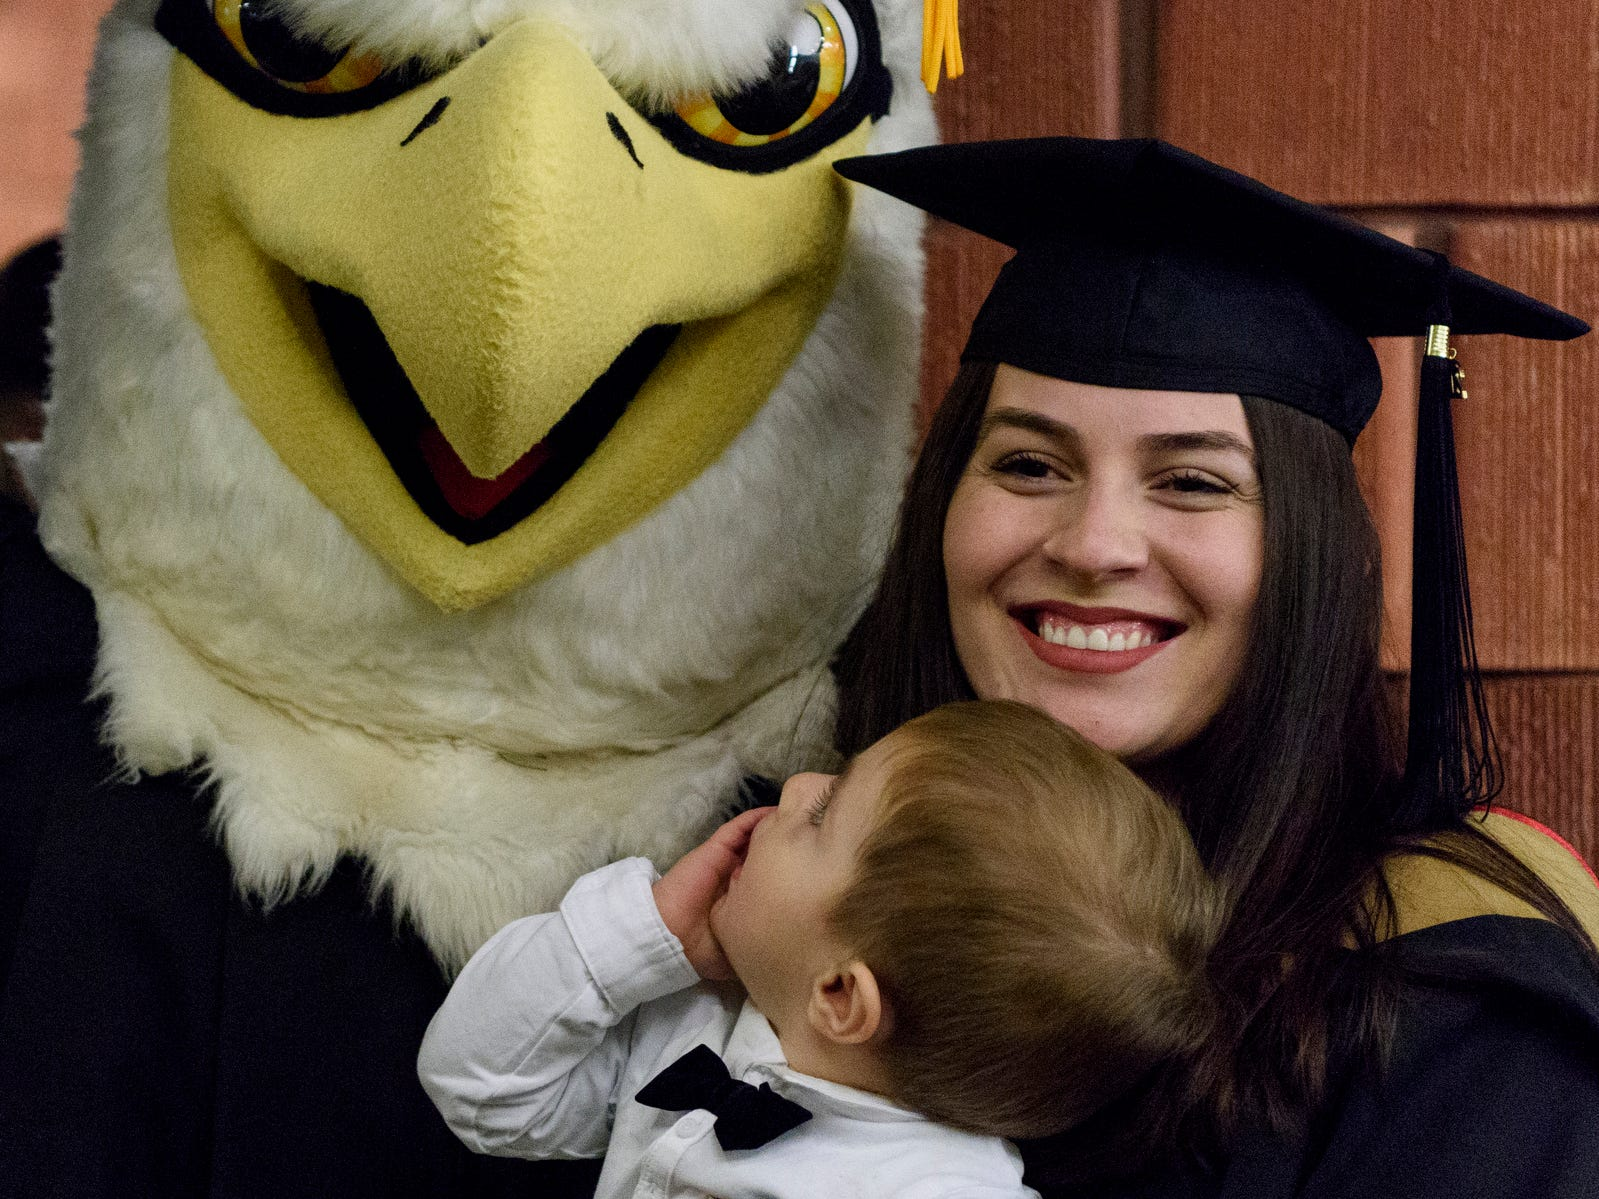 Master of Business Administration graduate Krenare Shala of Prishtina, Kosovo, poses for a picture with her son Lir Dragusha and Archie, the University of Southern Indiana mascot, following the fall commencement ceremony for USI's College of Liberal Arts and the Romain College of Business, Saturday afternoon, Dec. 8, 2018.